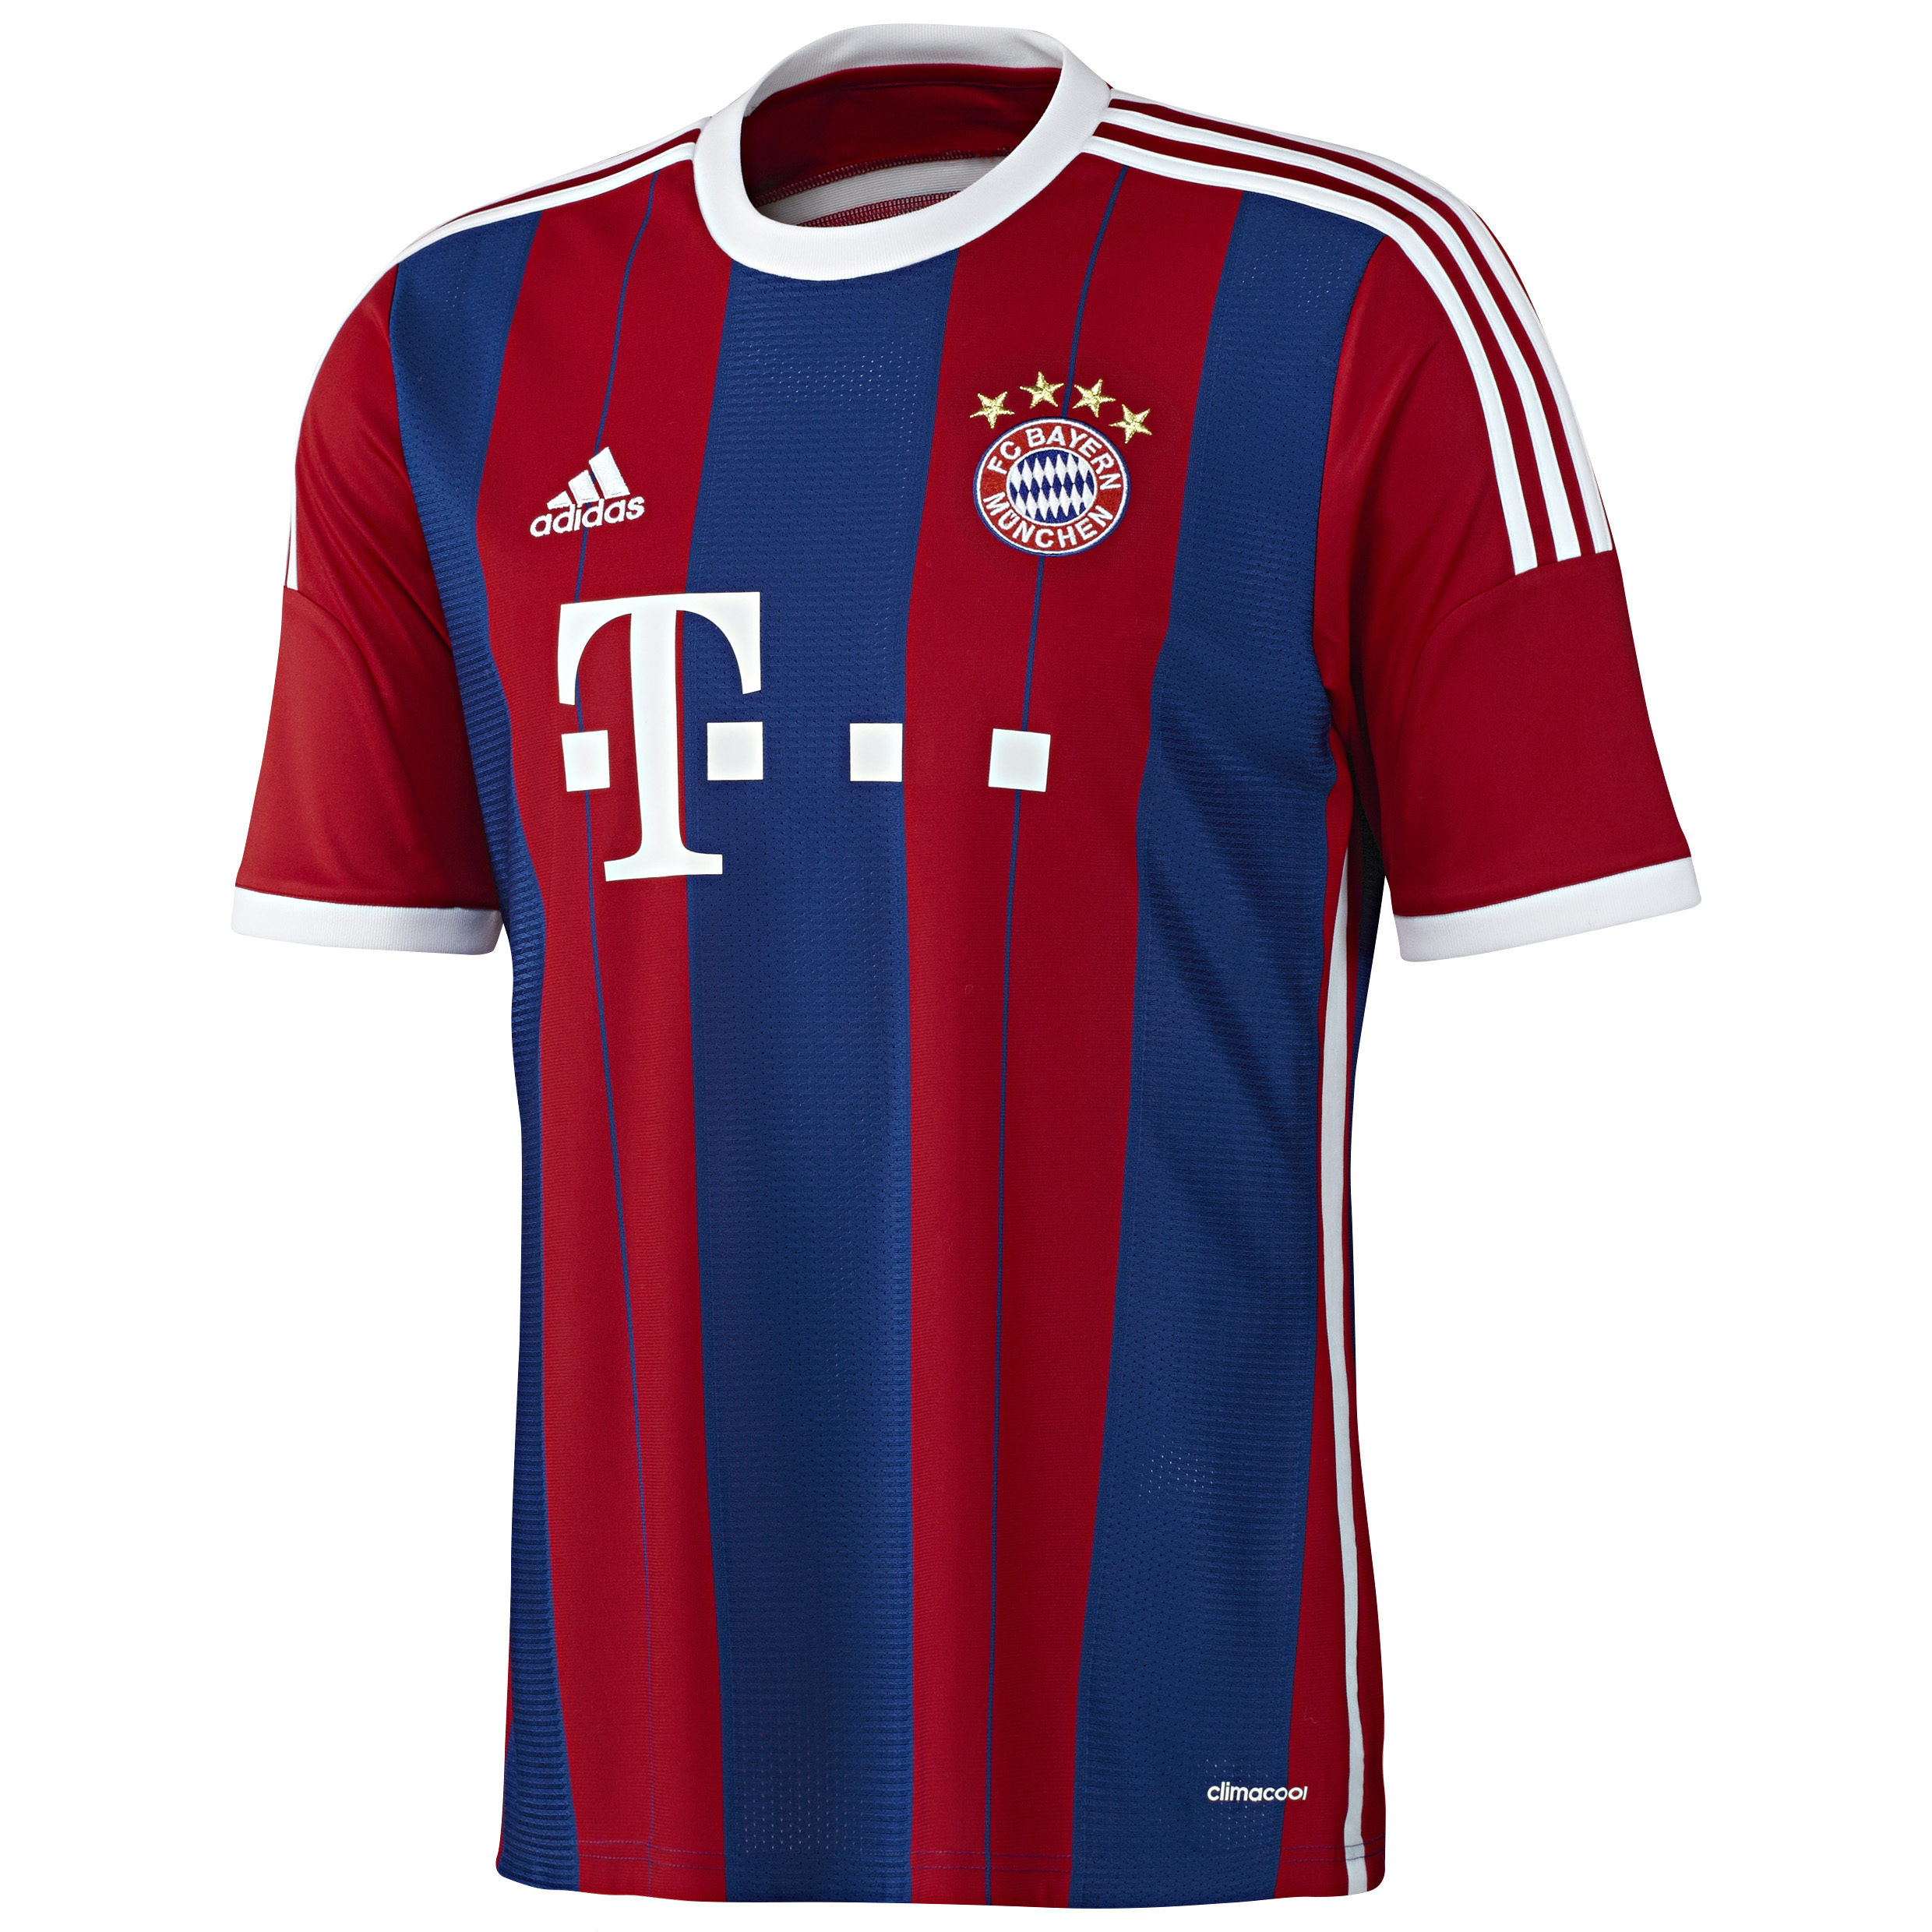 Buy Bayern Munich Home Kit 2014/15